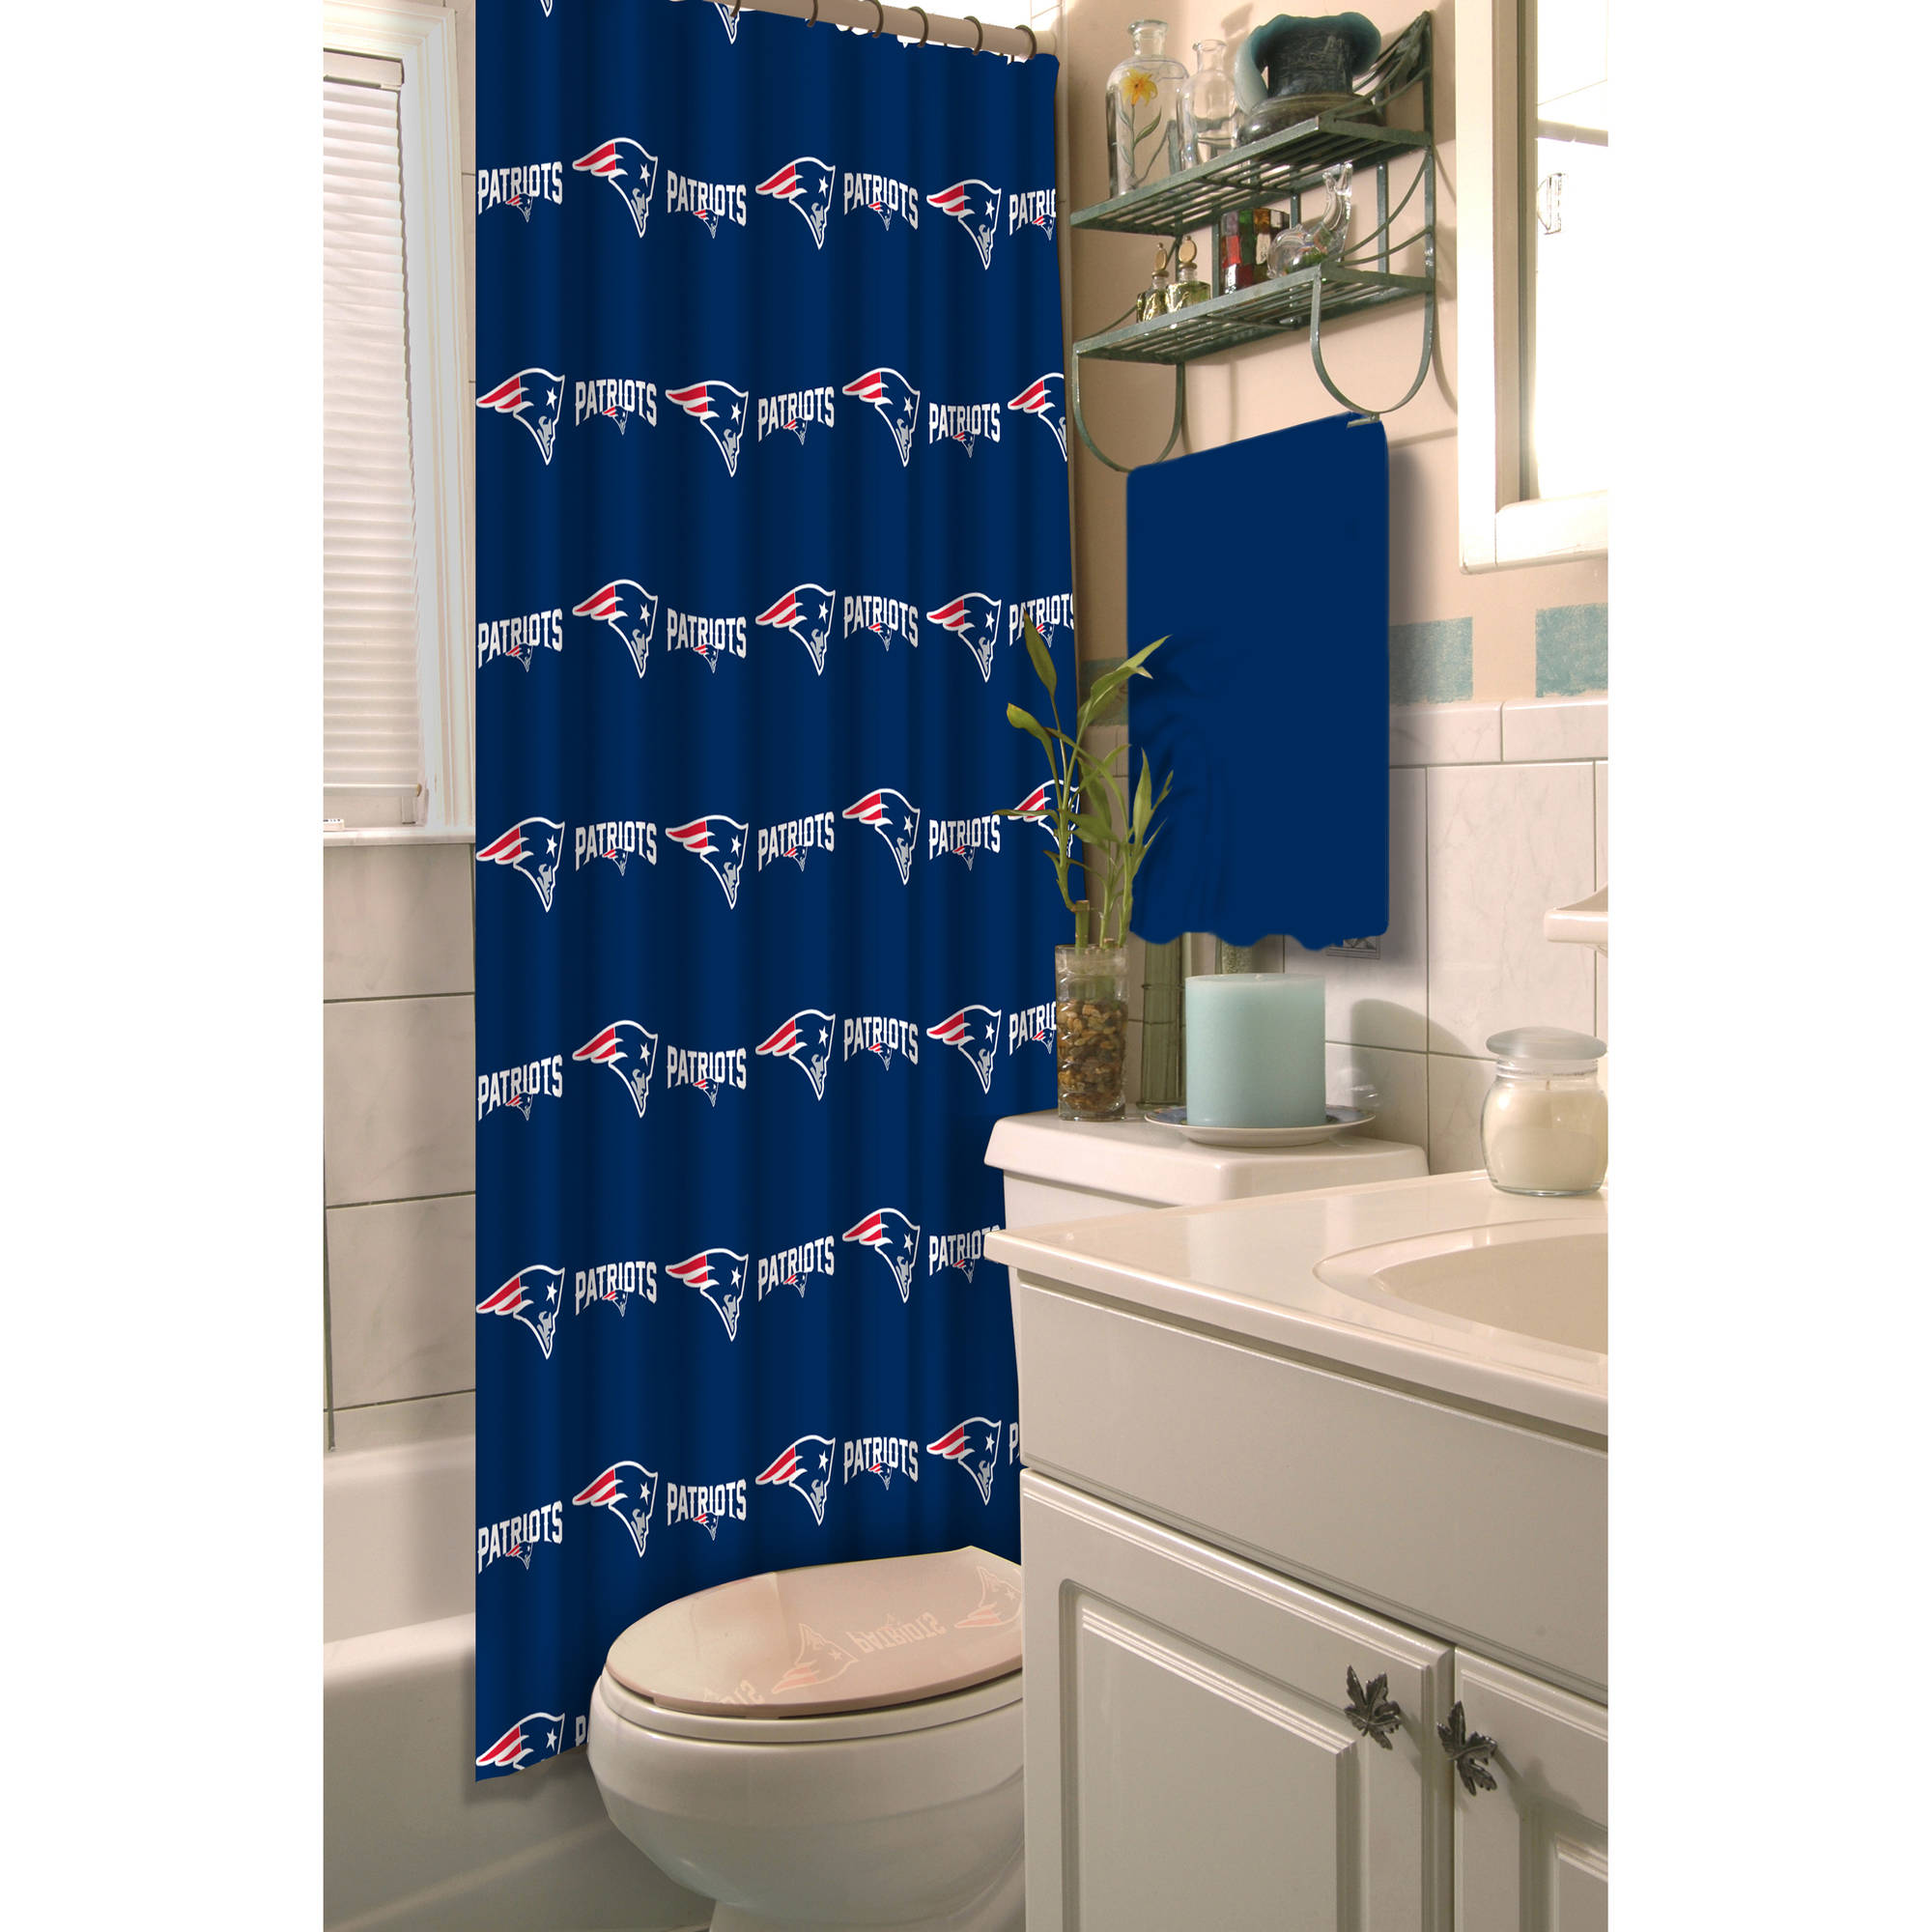 Bathroom sets walmart - Nfl New England Patriots Decorative Bath Collection Shower Curtain